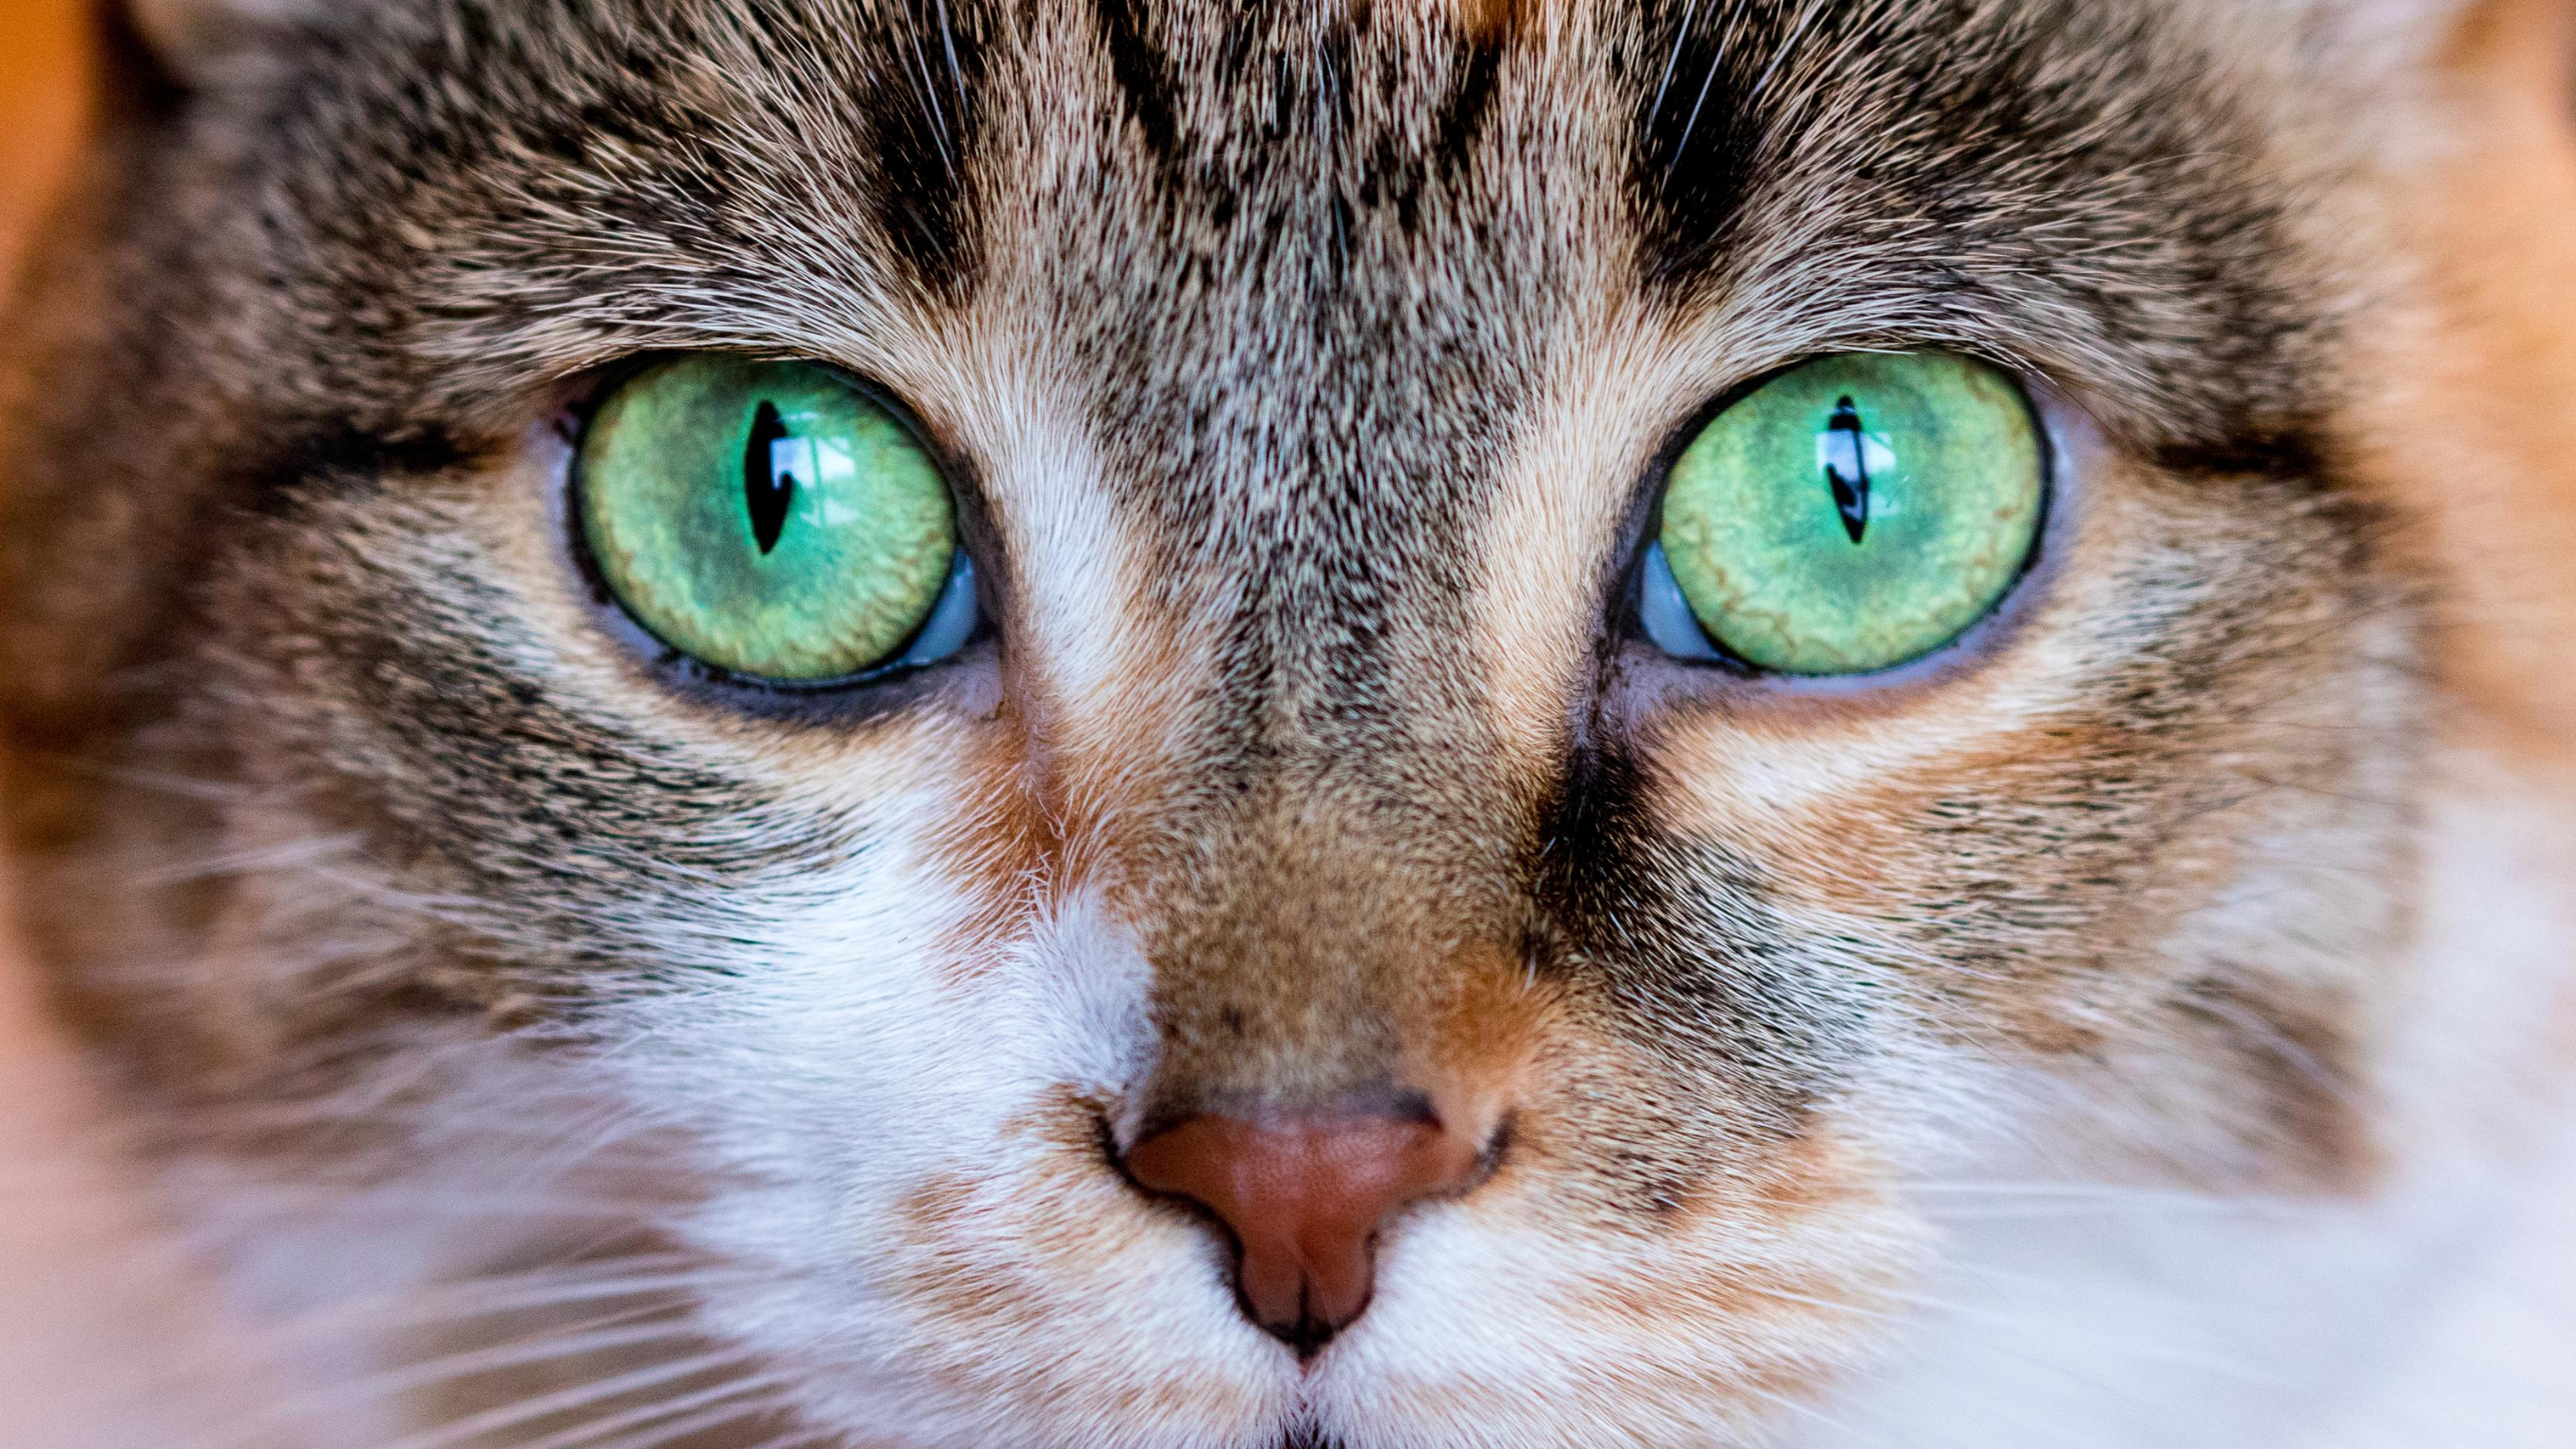 A green eyed cat looking directly into the camera